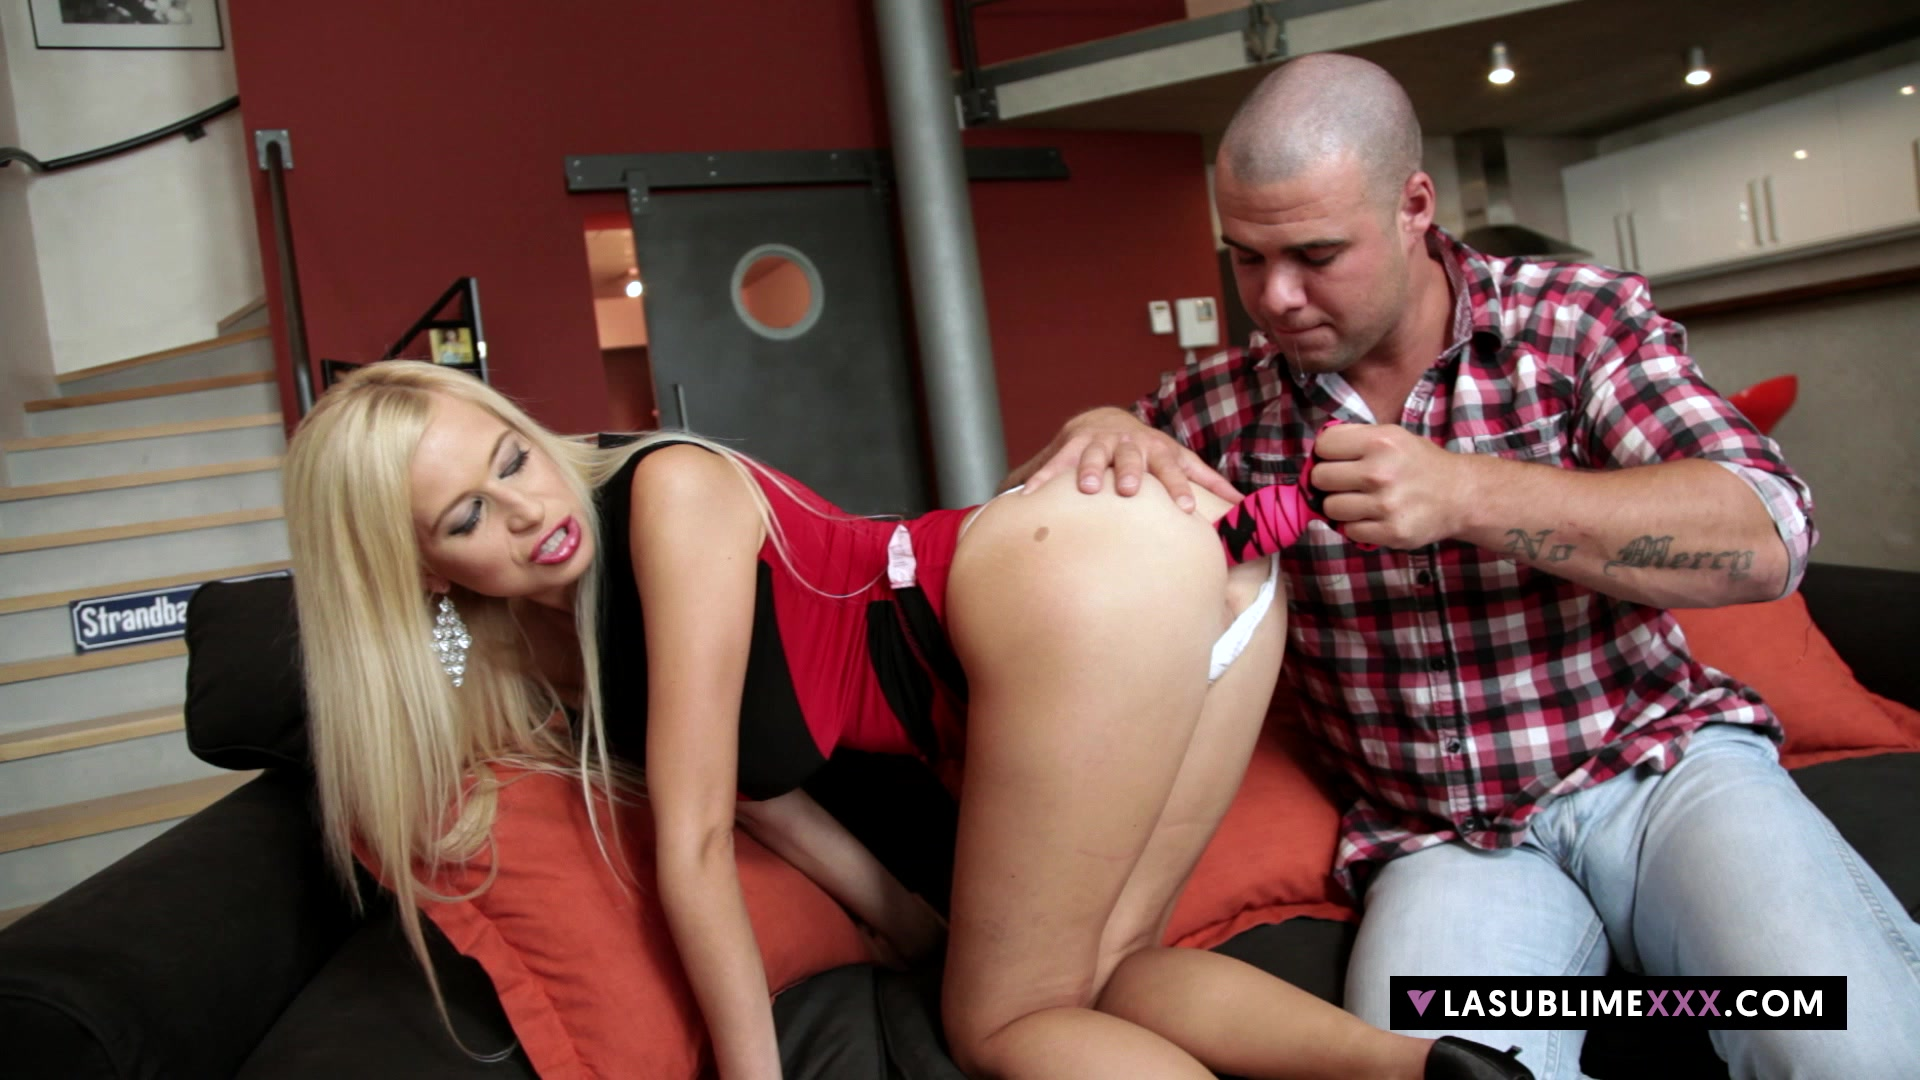 Lasublimexxx Anastasia Devine Will Get Thick Chisel In Her Rump